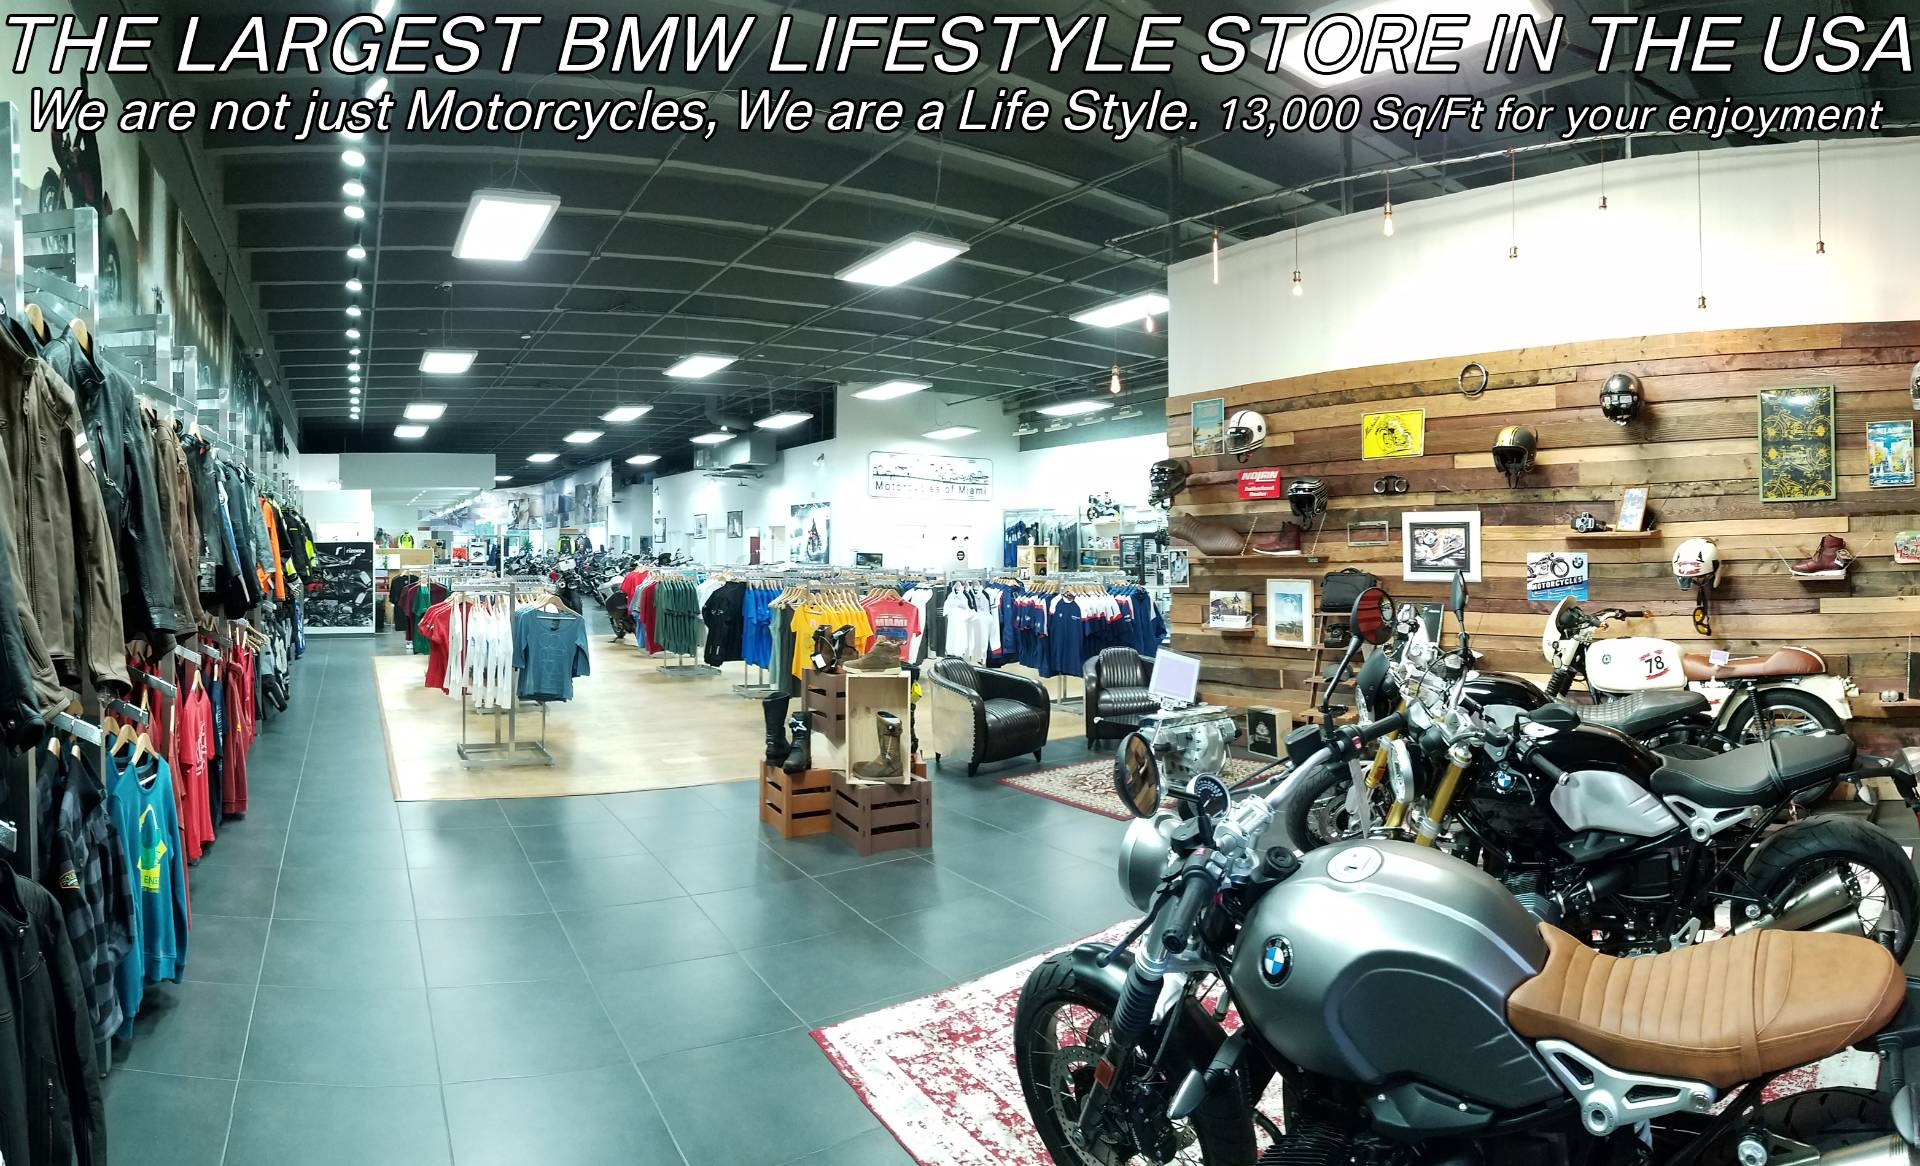 Used 2011 BMW R 1200 GSA For Sale, Pre owned BMW R 1200GSA For Sale, BMW Motorcycle R1200GSA, BMW Motorcycles of Miami, Motorcycles of Miami, Motorcycles Miami - Photo 28